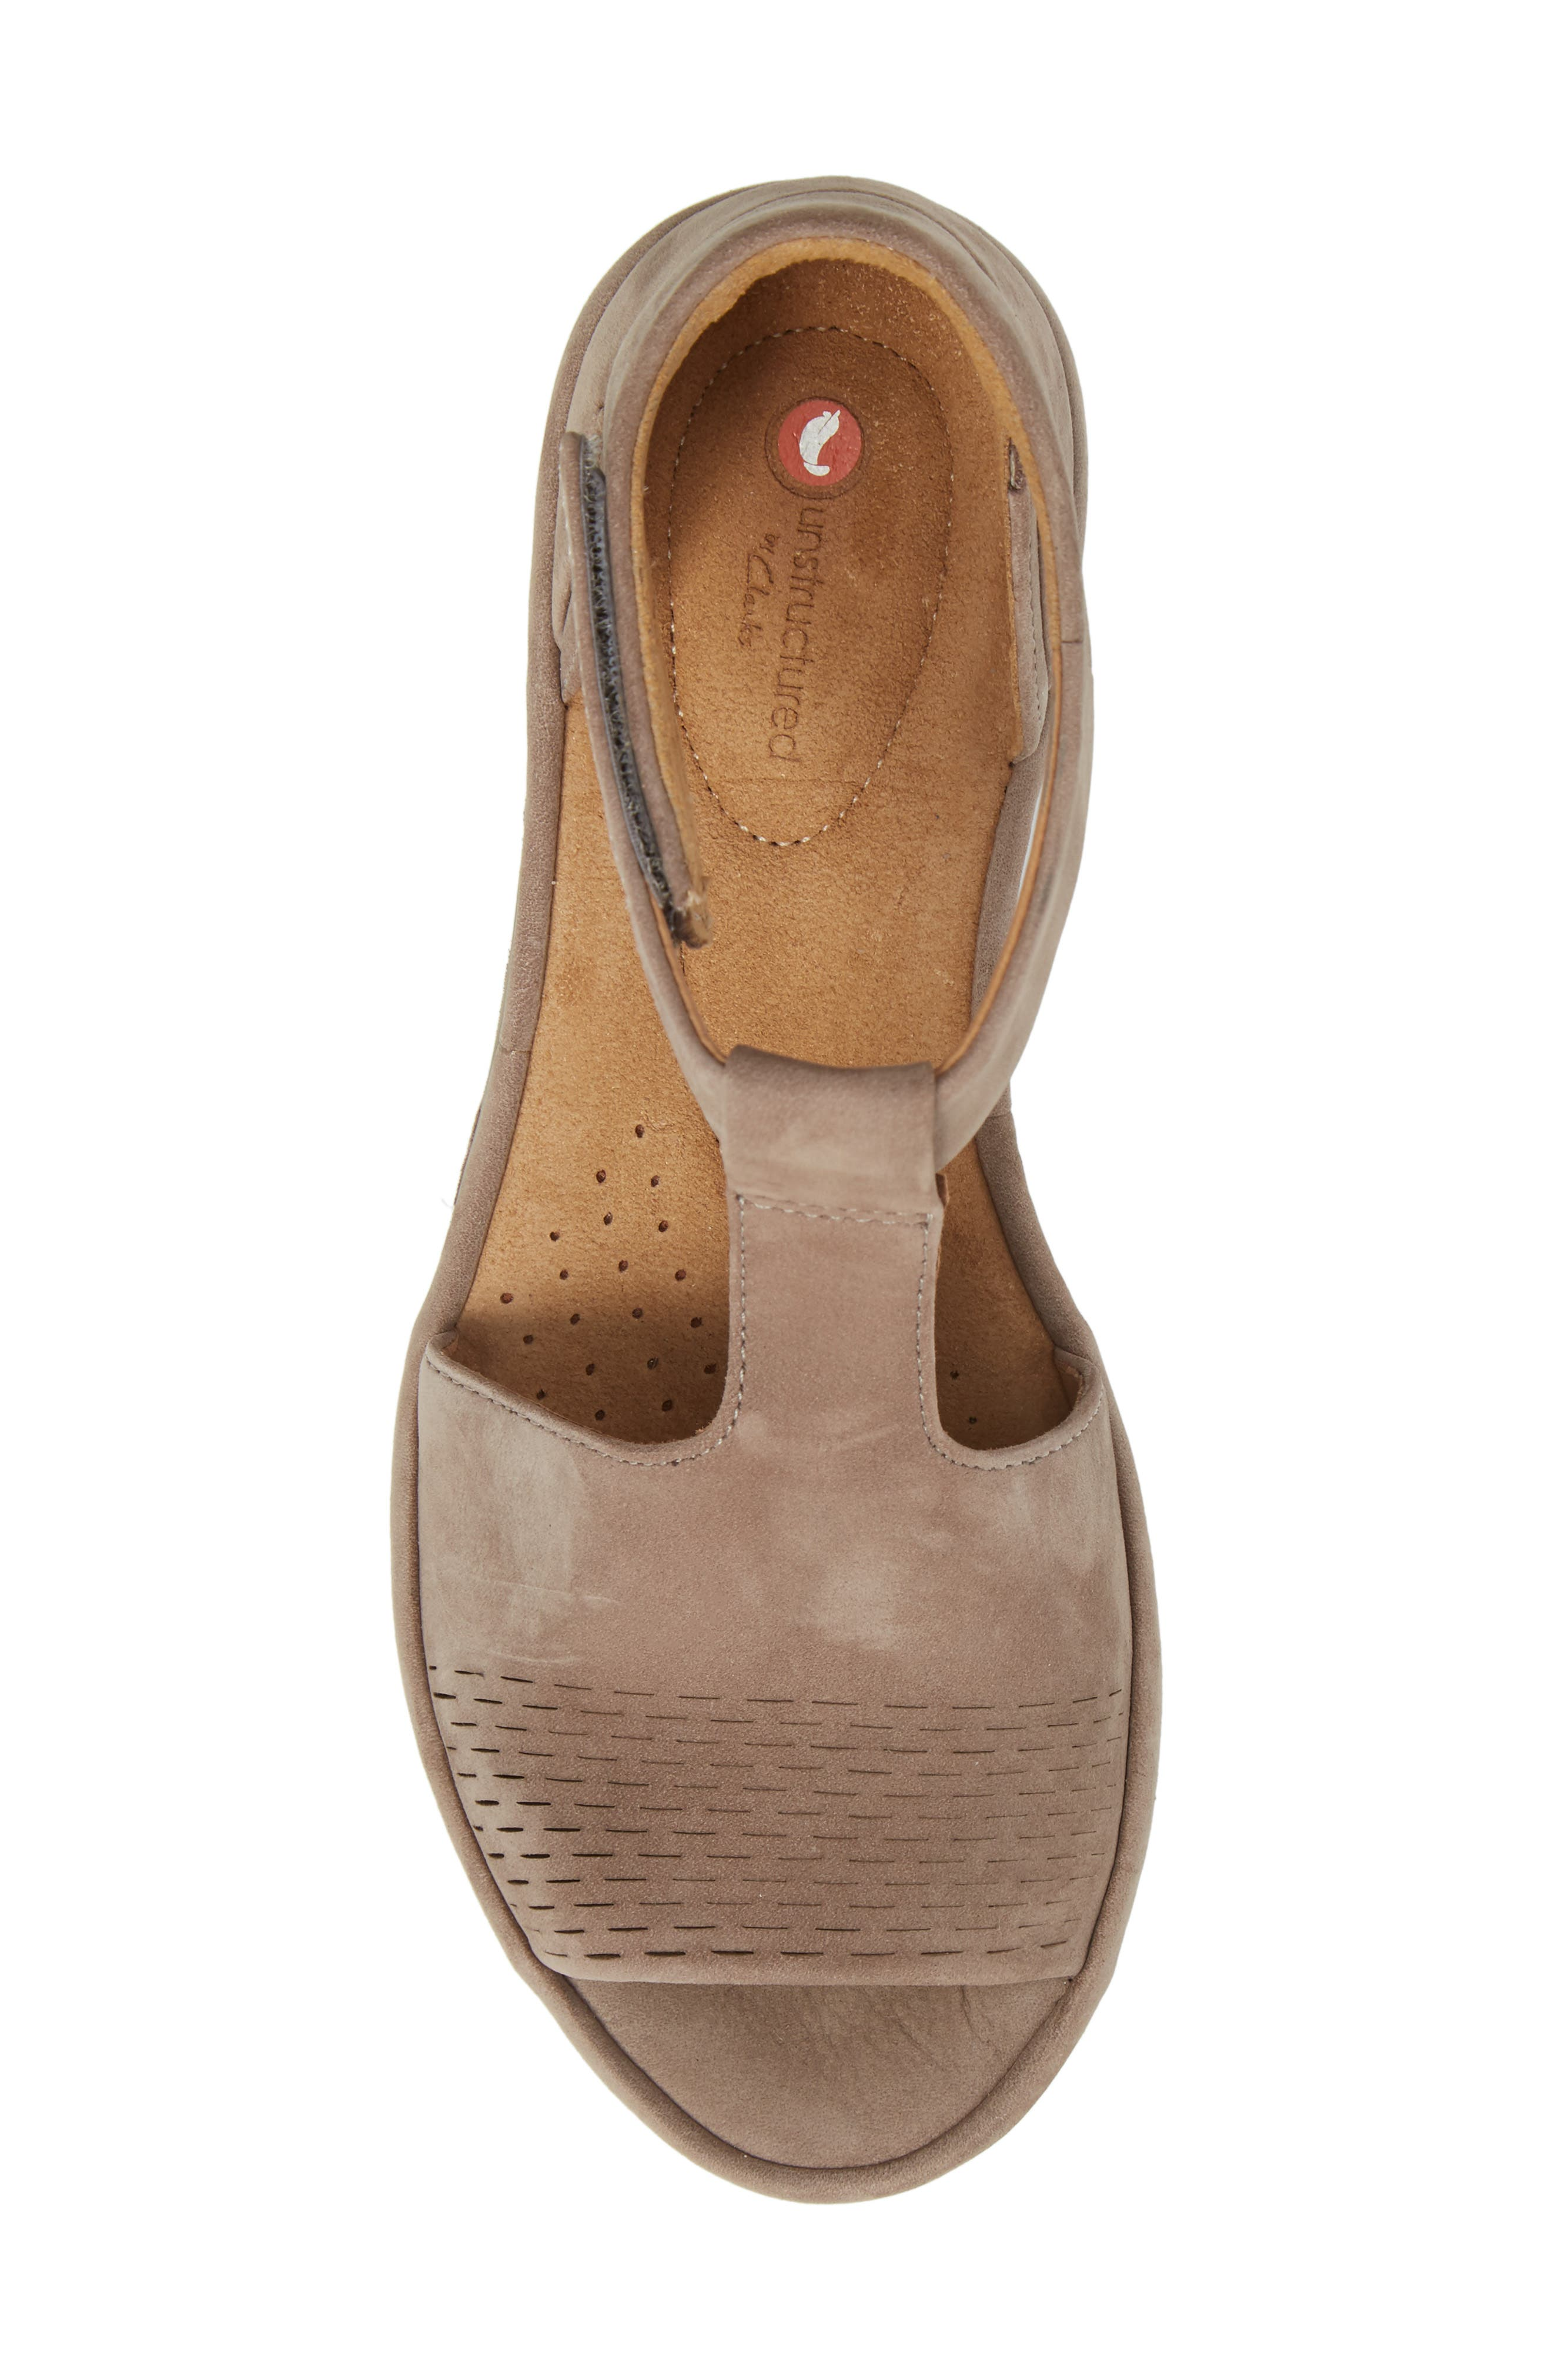 Wynnmere Avah T-Strap Wedge Sandal,                             Alternate thumbnail 5, color,                             Warm Grey Nubuck